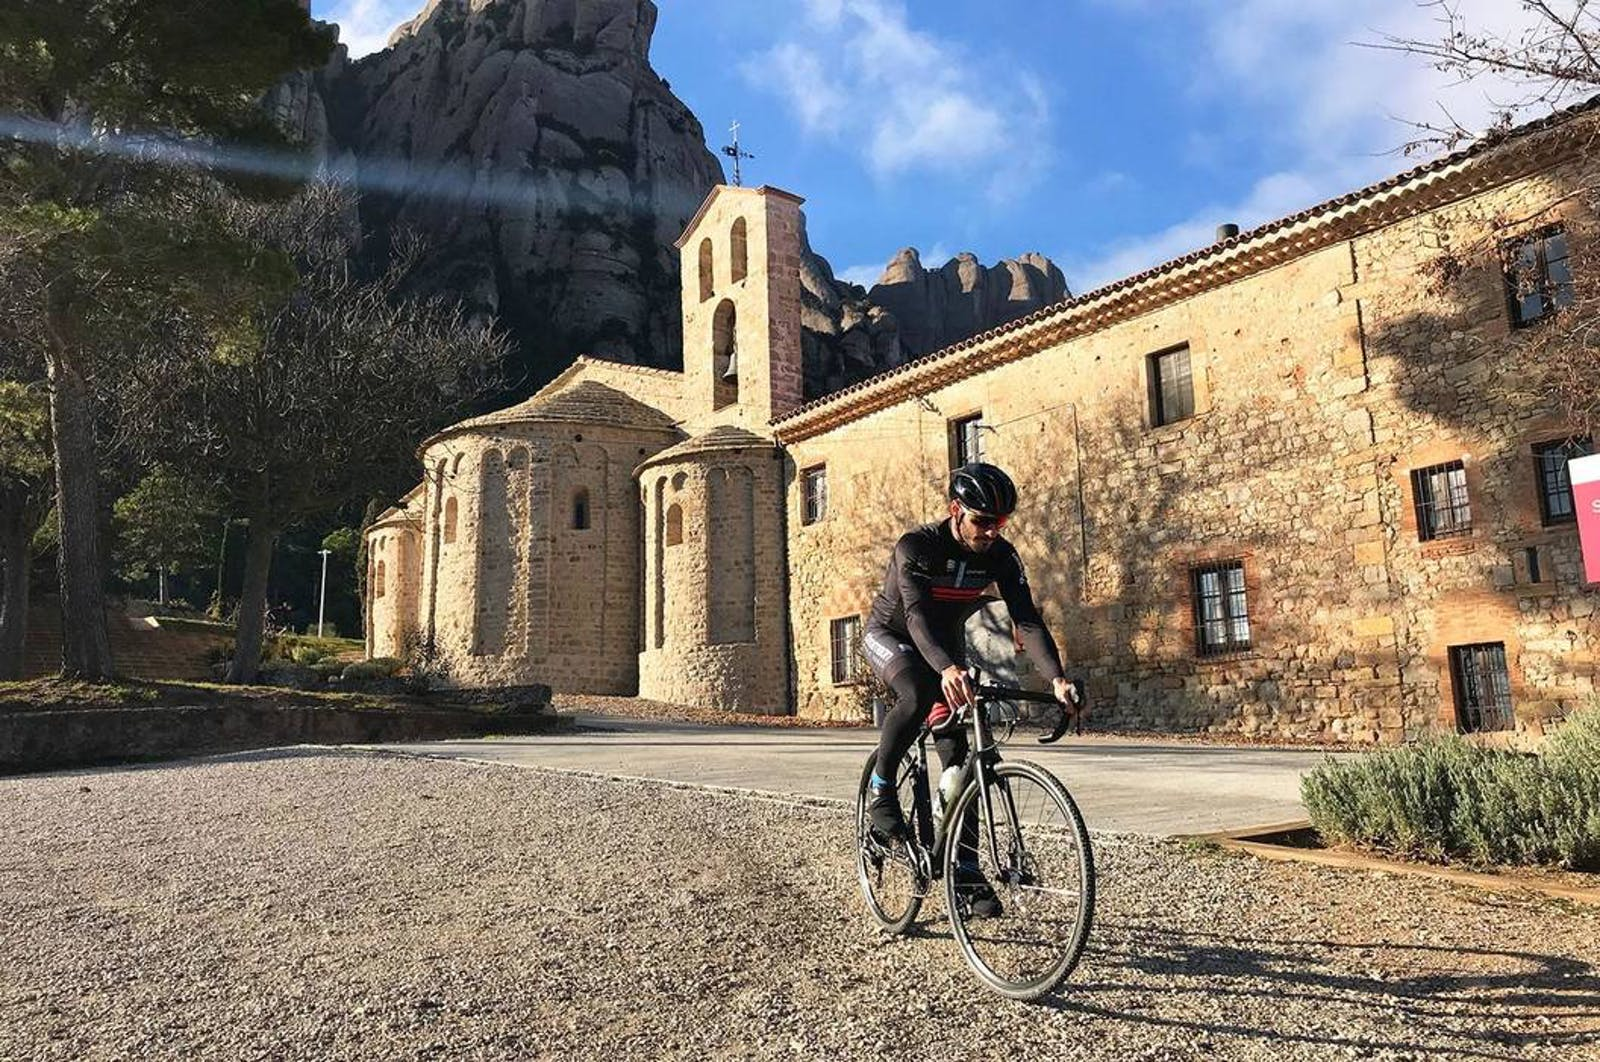 gravel riding ,TBT,Thomson,cycle touring,Spain,Barcelona,Girona,Gravel.Offroad,Backroads,Back Roads